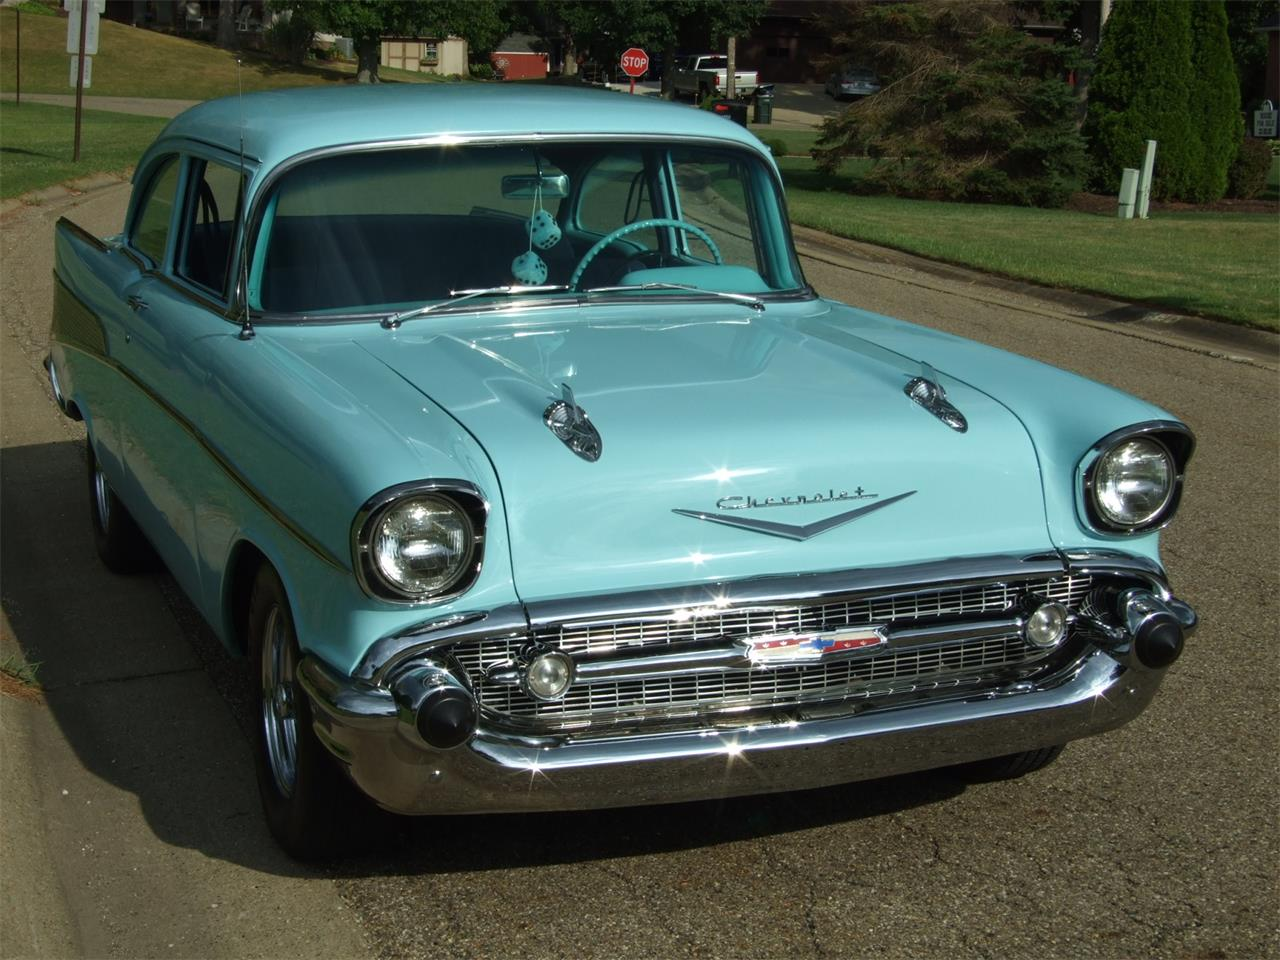 1957 Chevrolet 210 For Sale Cc 1015361 Vin Tag Large Picture Of Classic Located In Ohio 3950000 Lrgh